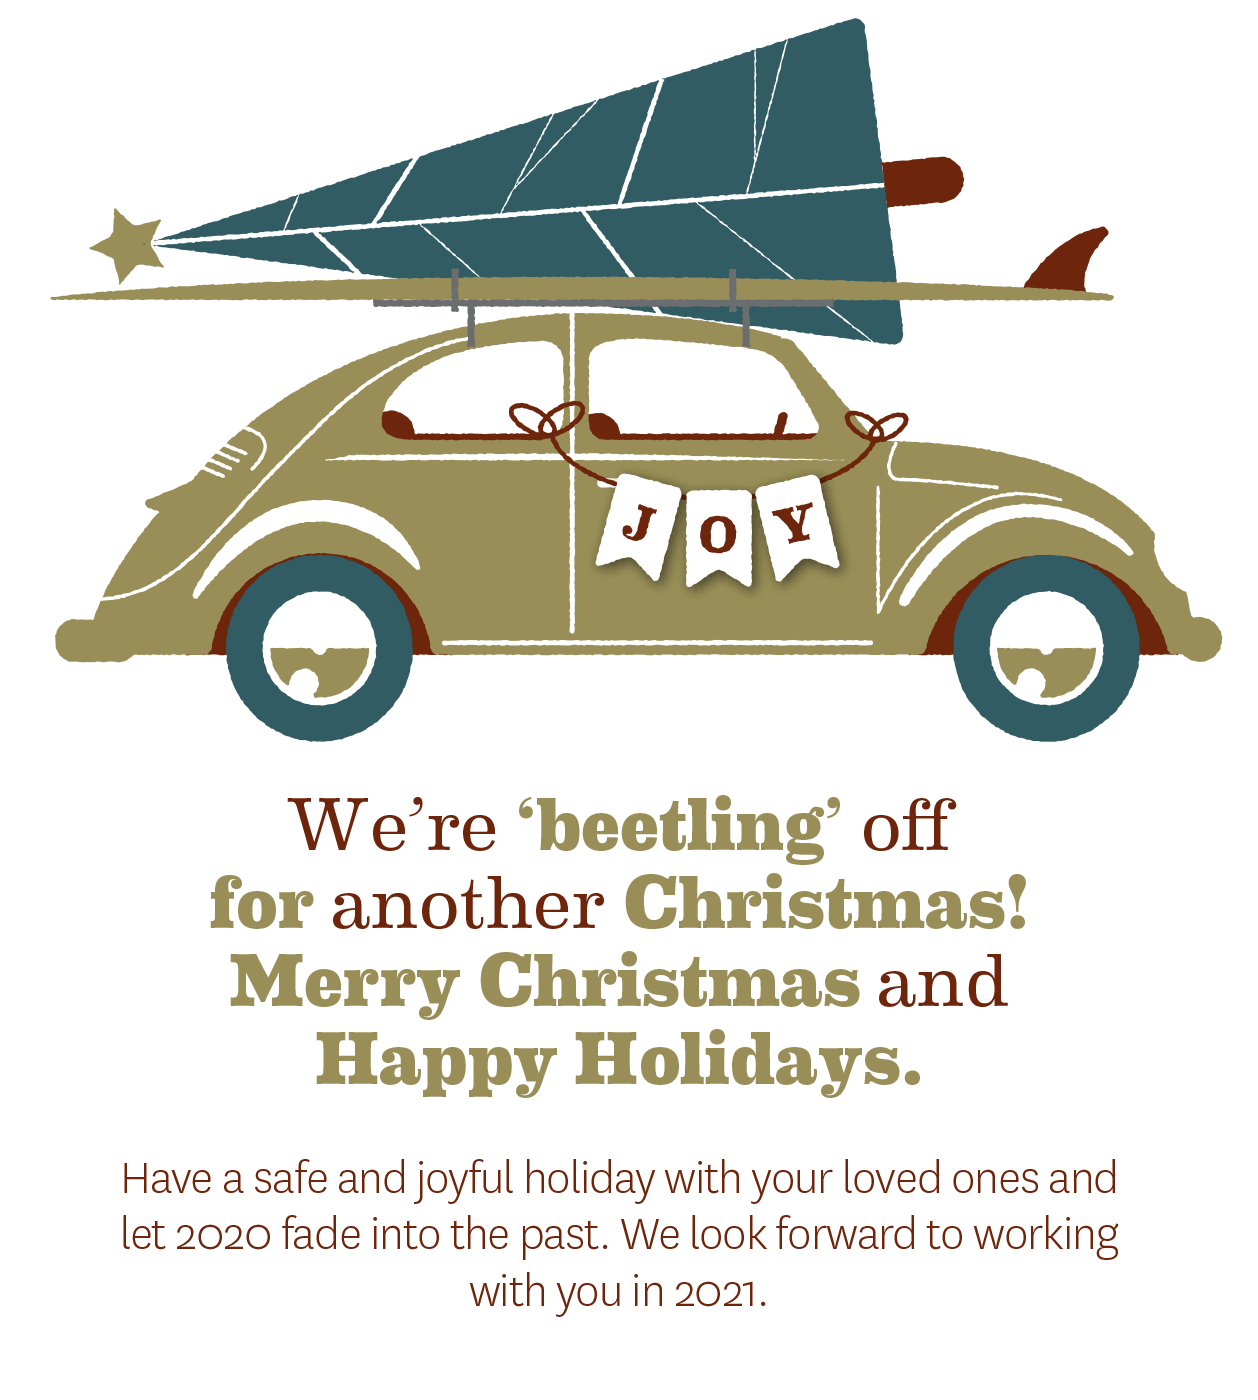 We're 'beetling' offfor another Christmas! Merry Christmas and Happy Holidays. Have a safe and joyful holiday with your loved ones and let 2020 fade into the past. We look forward to working with you in 2021.